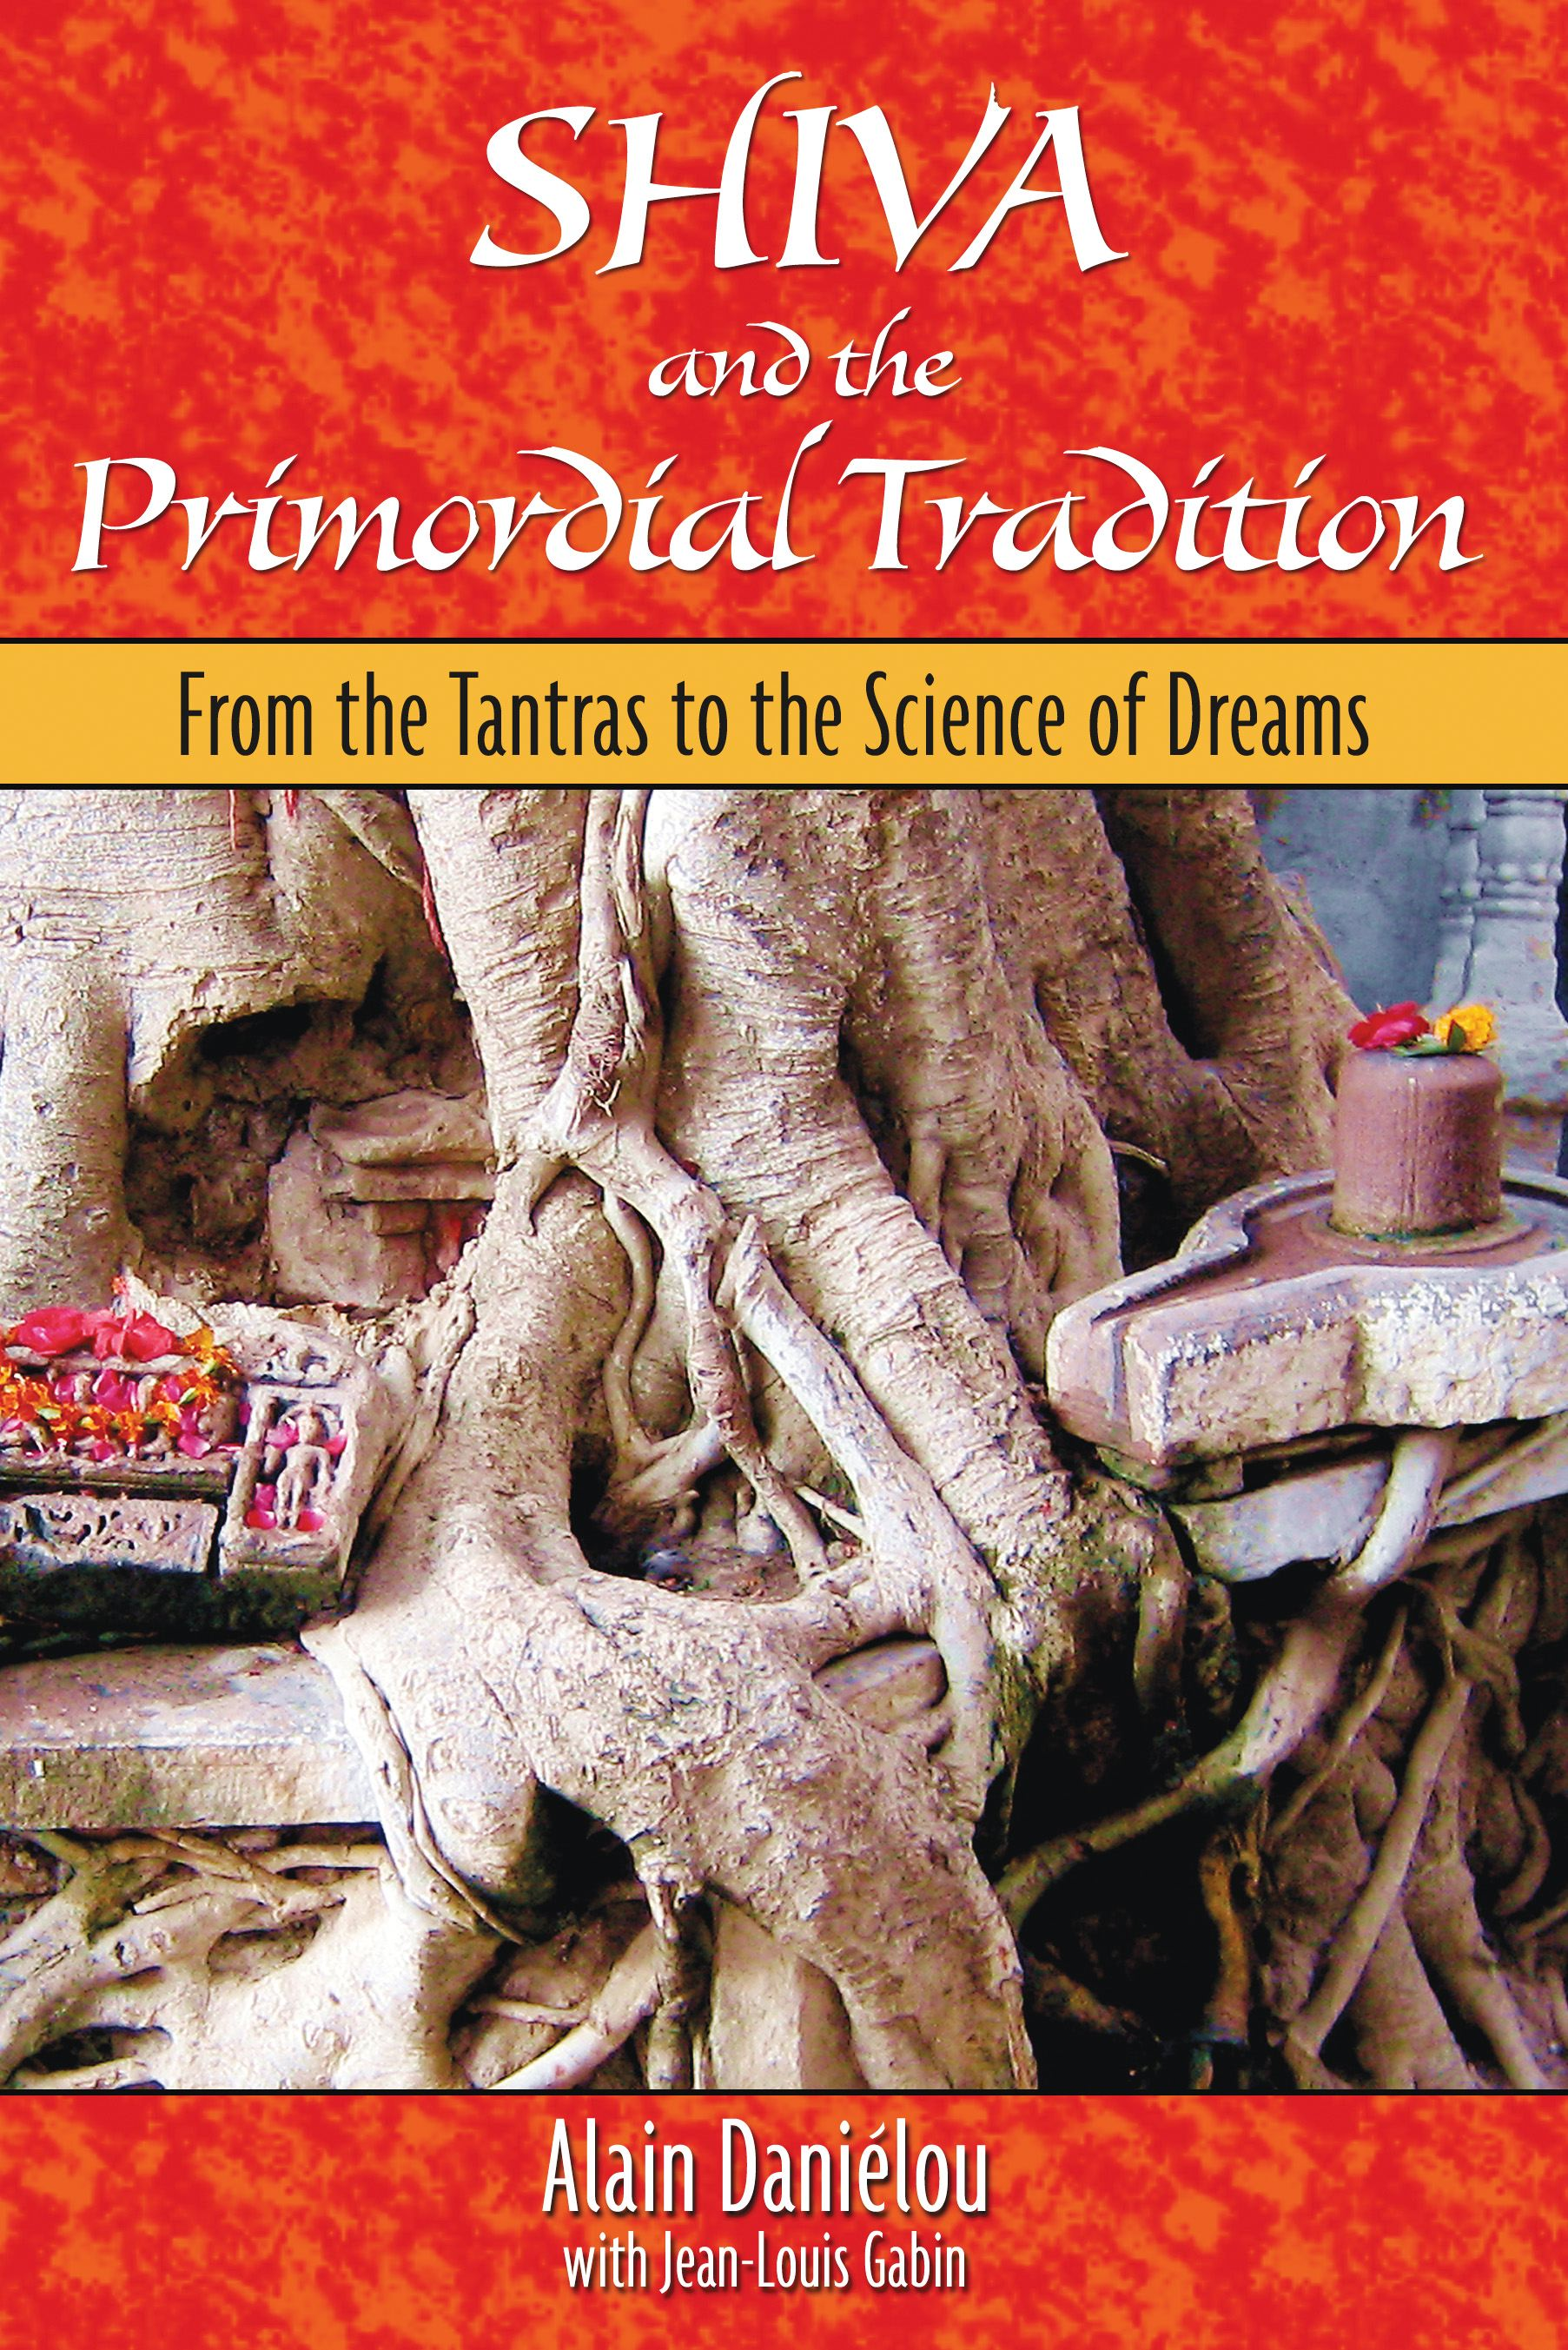 Shiva and the primordial tradition 9781594771415 hr